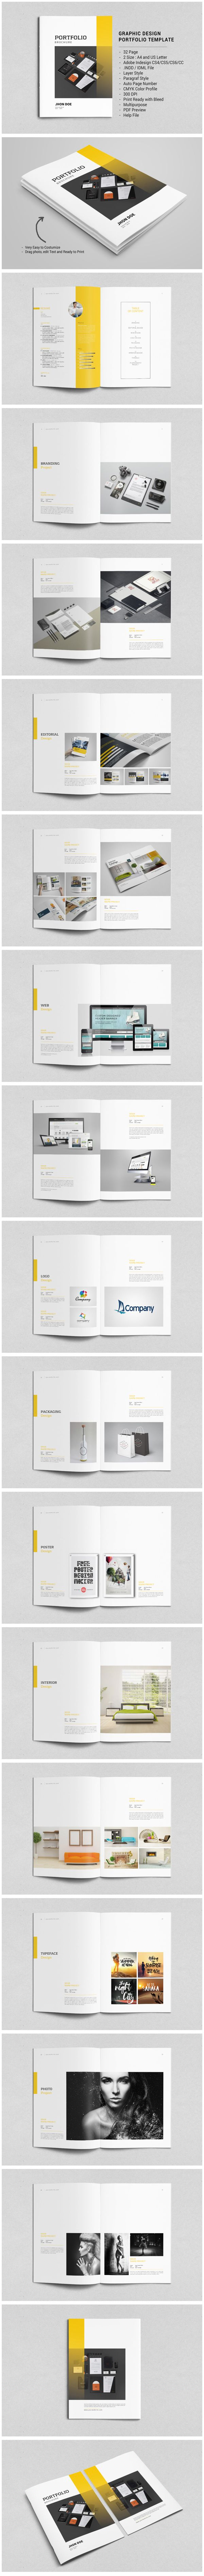 """Check out my @Behance project: """"Graphic Design Portfolio Template"""" https://www.behance.net/gallery/46406667/Graphic-Design-Portfolio-Template"""